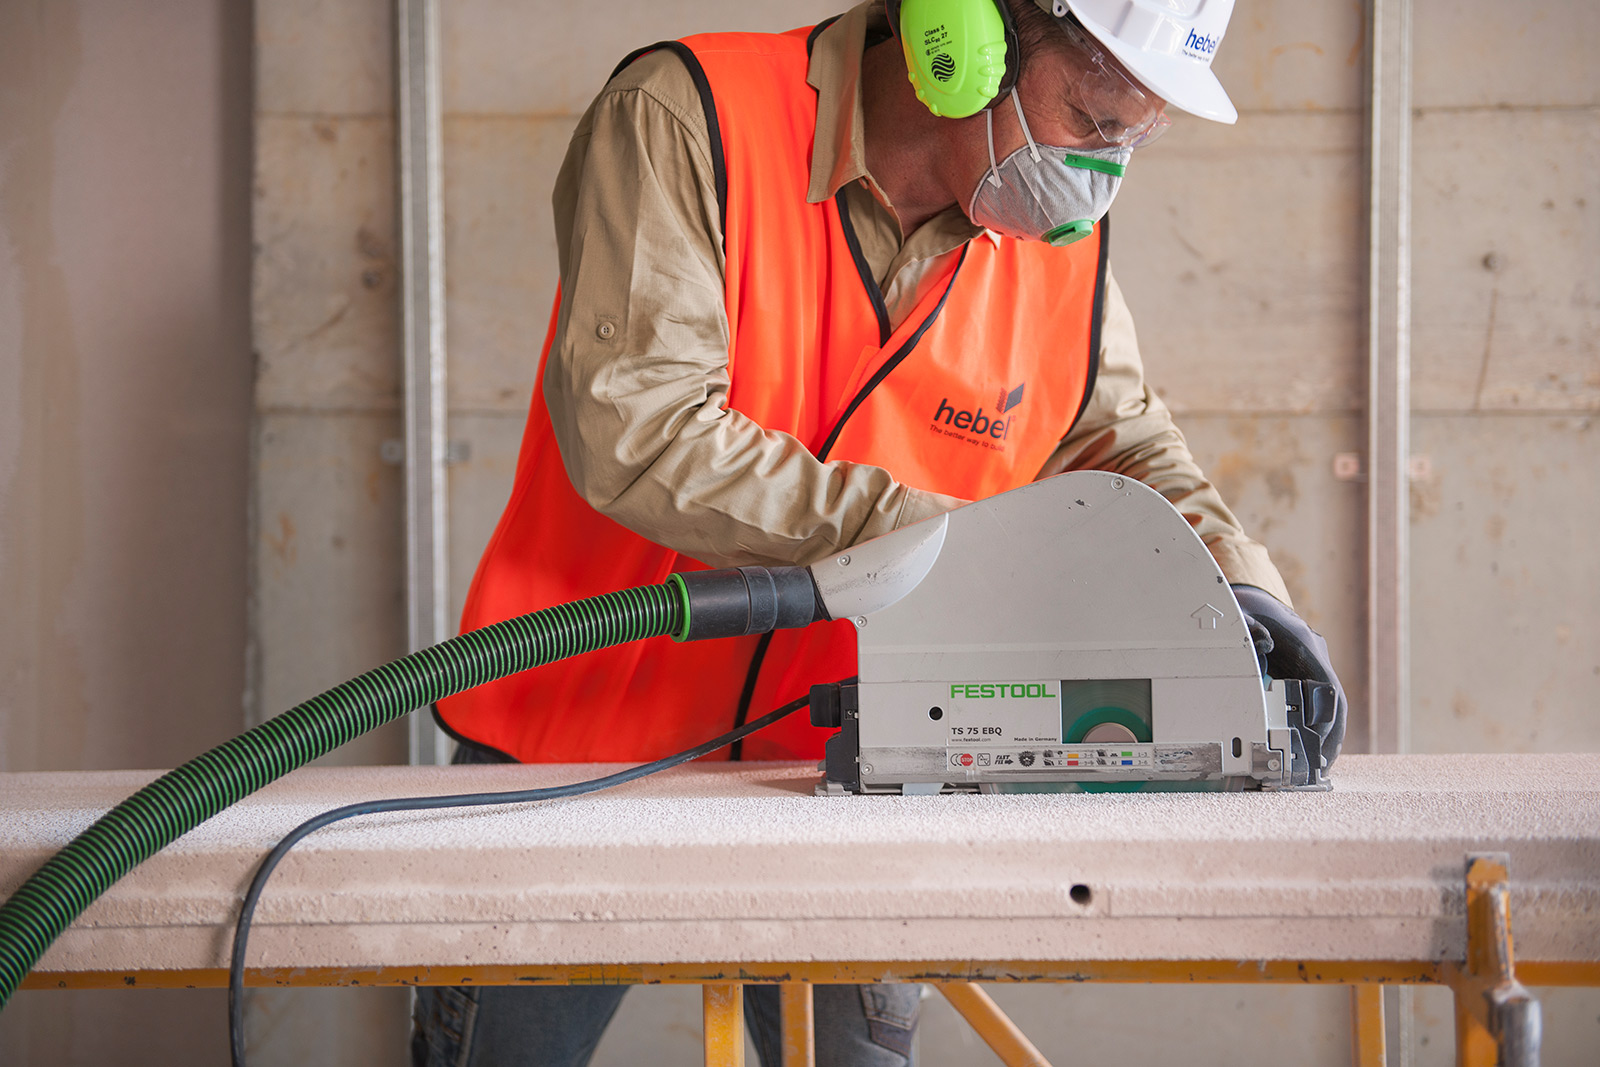 Cutting Hebel blocks with saw